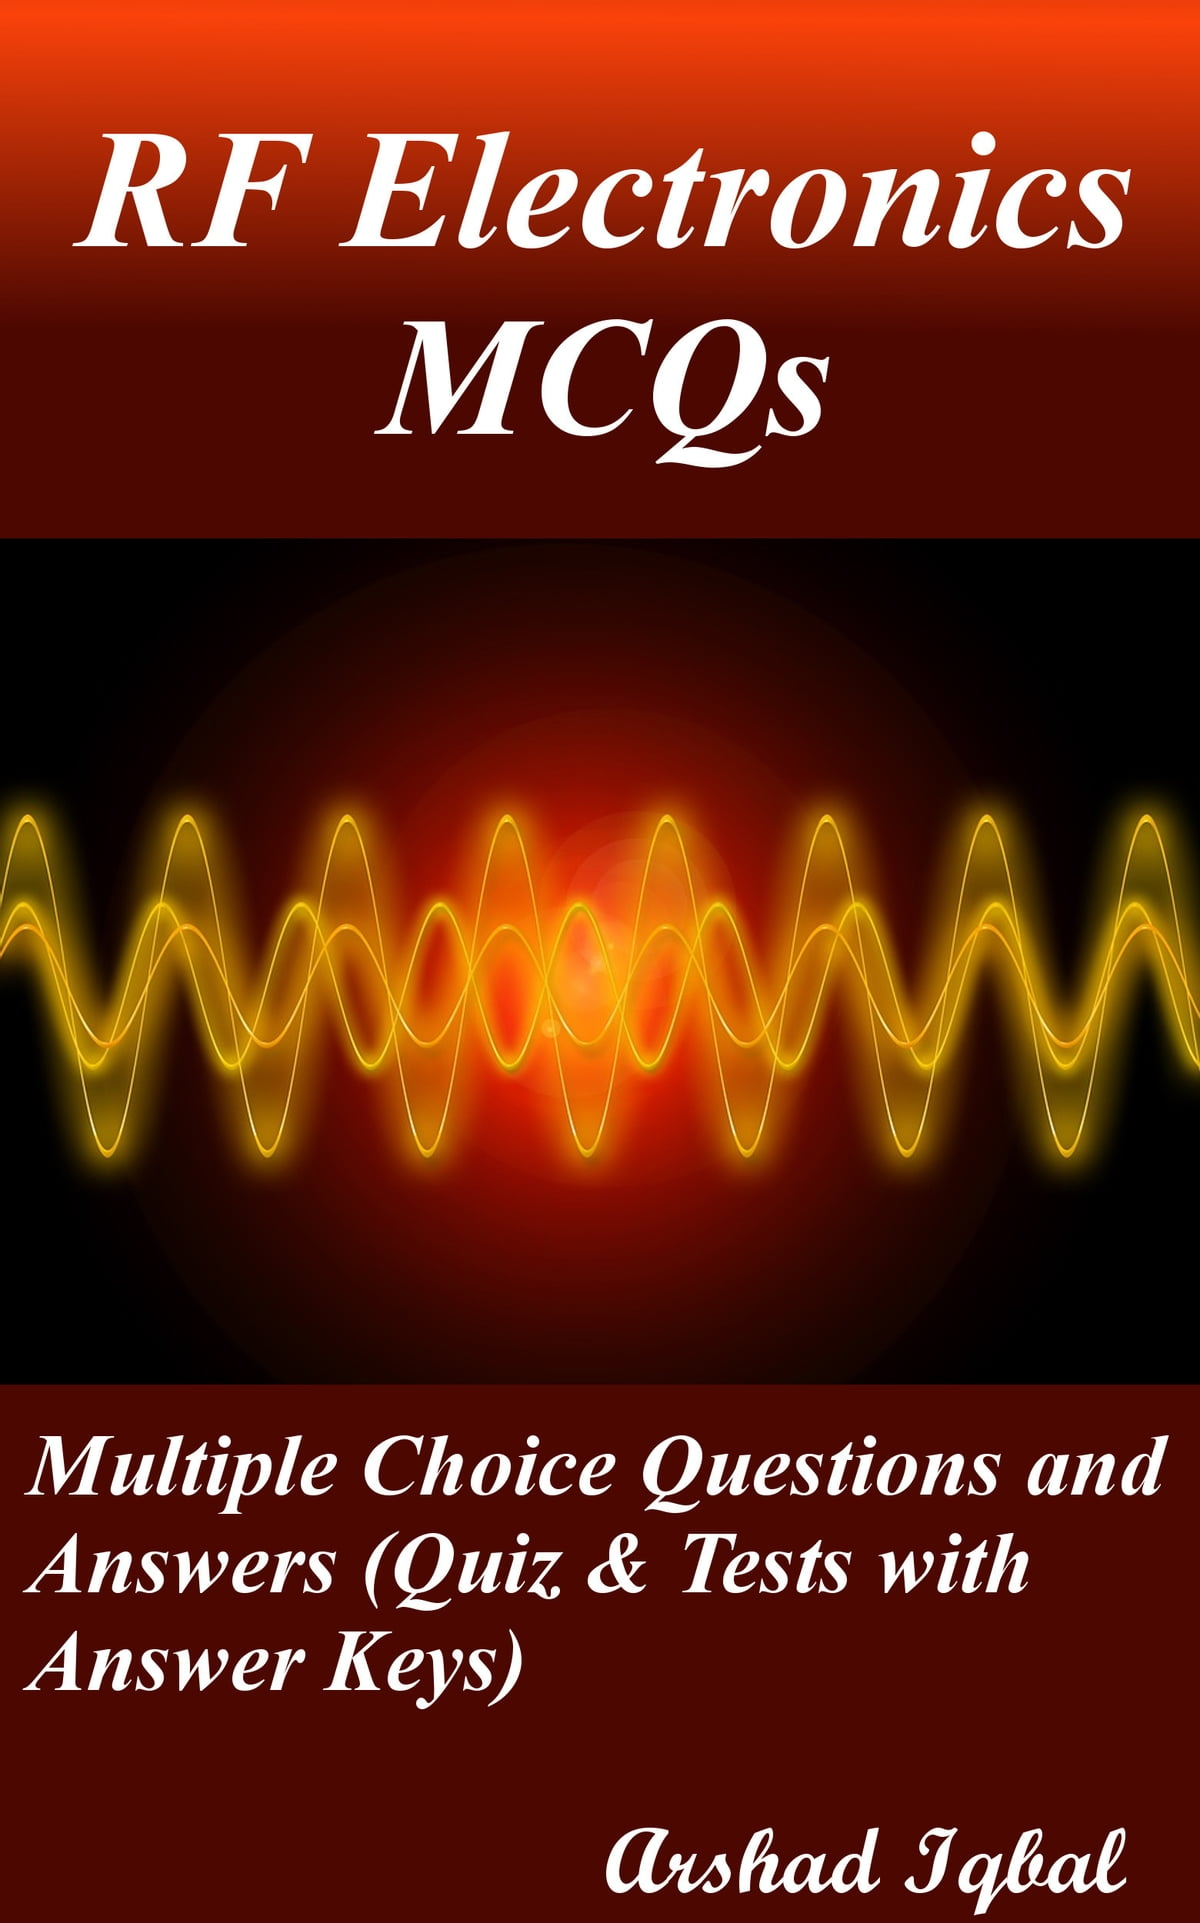 RF Electronics MCQs: Multiple Choice Questions and Answers (Quiz & Tests  with Answer Keys) ebook by Arshad Iqbal - Rakuten Kobo